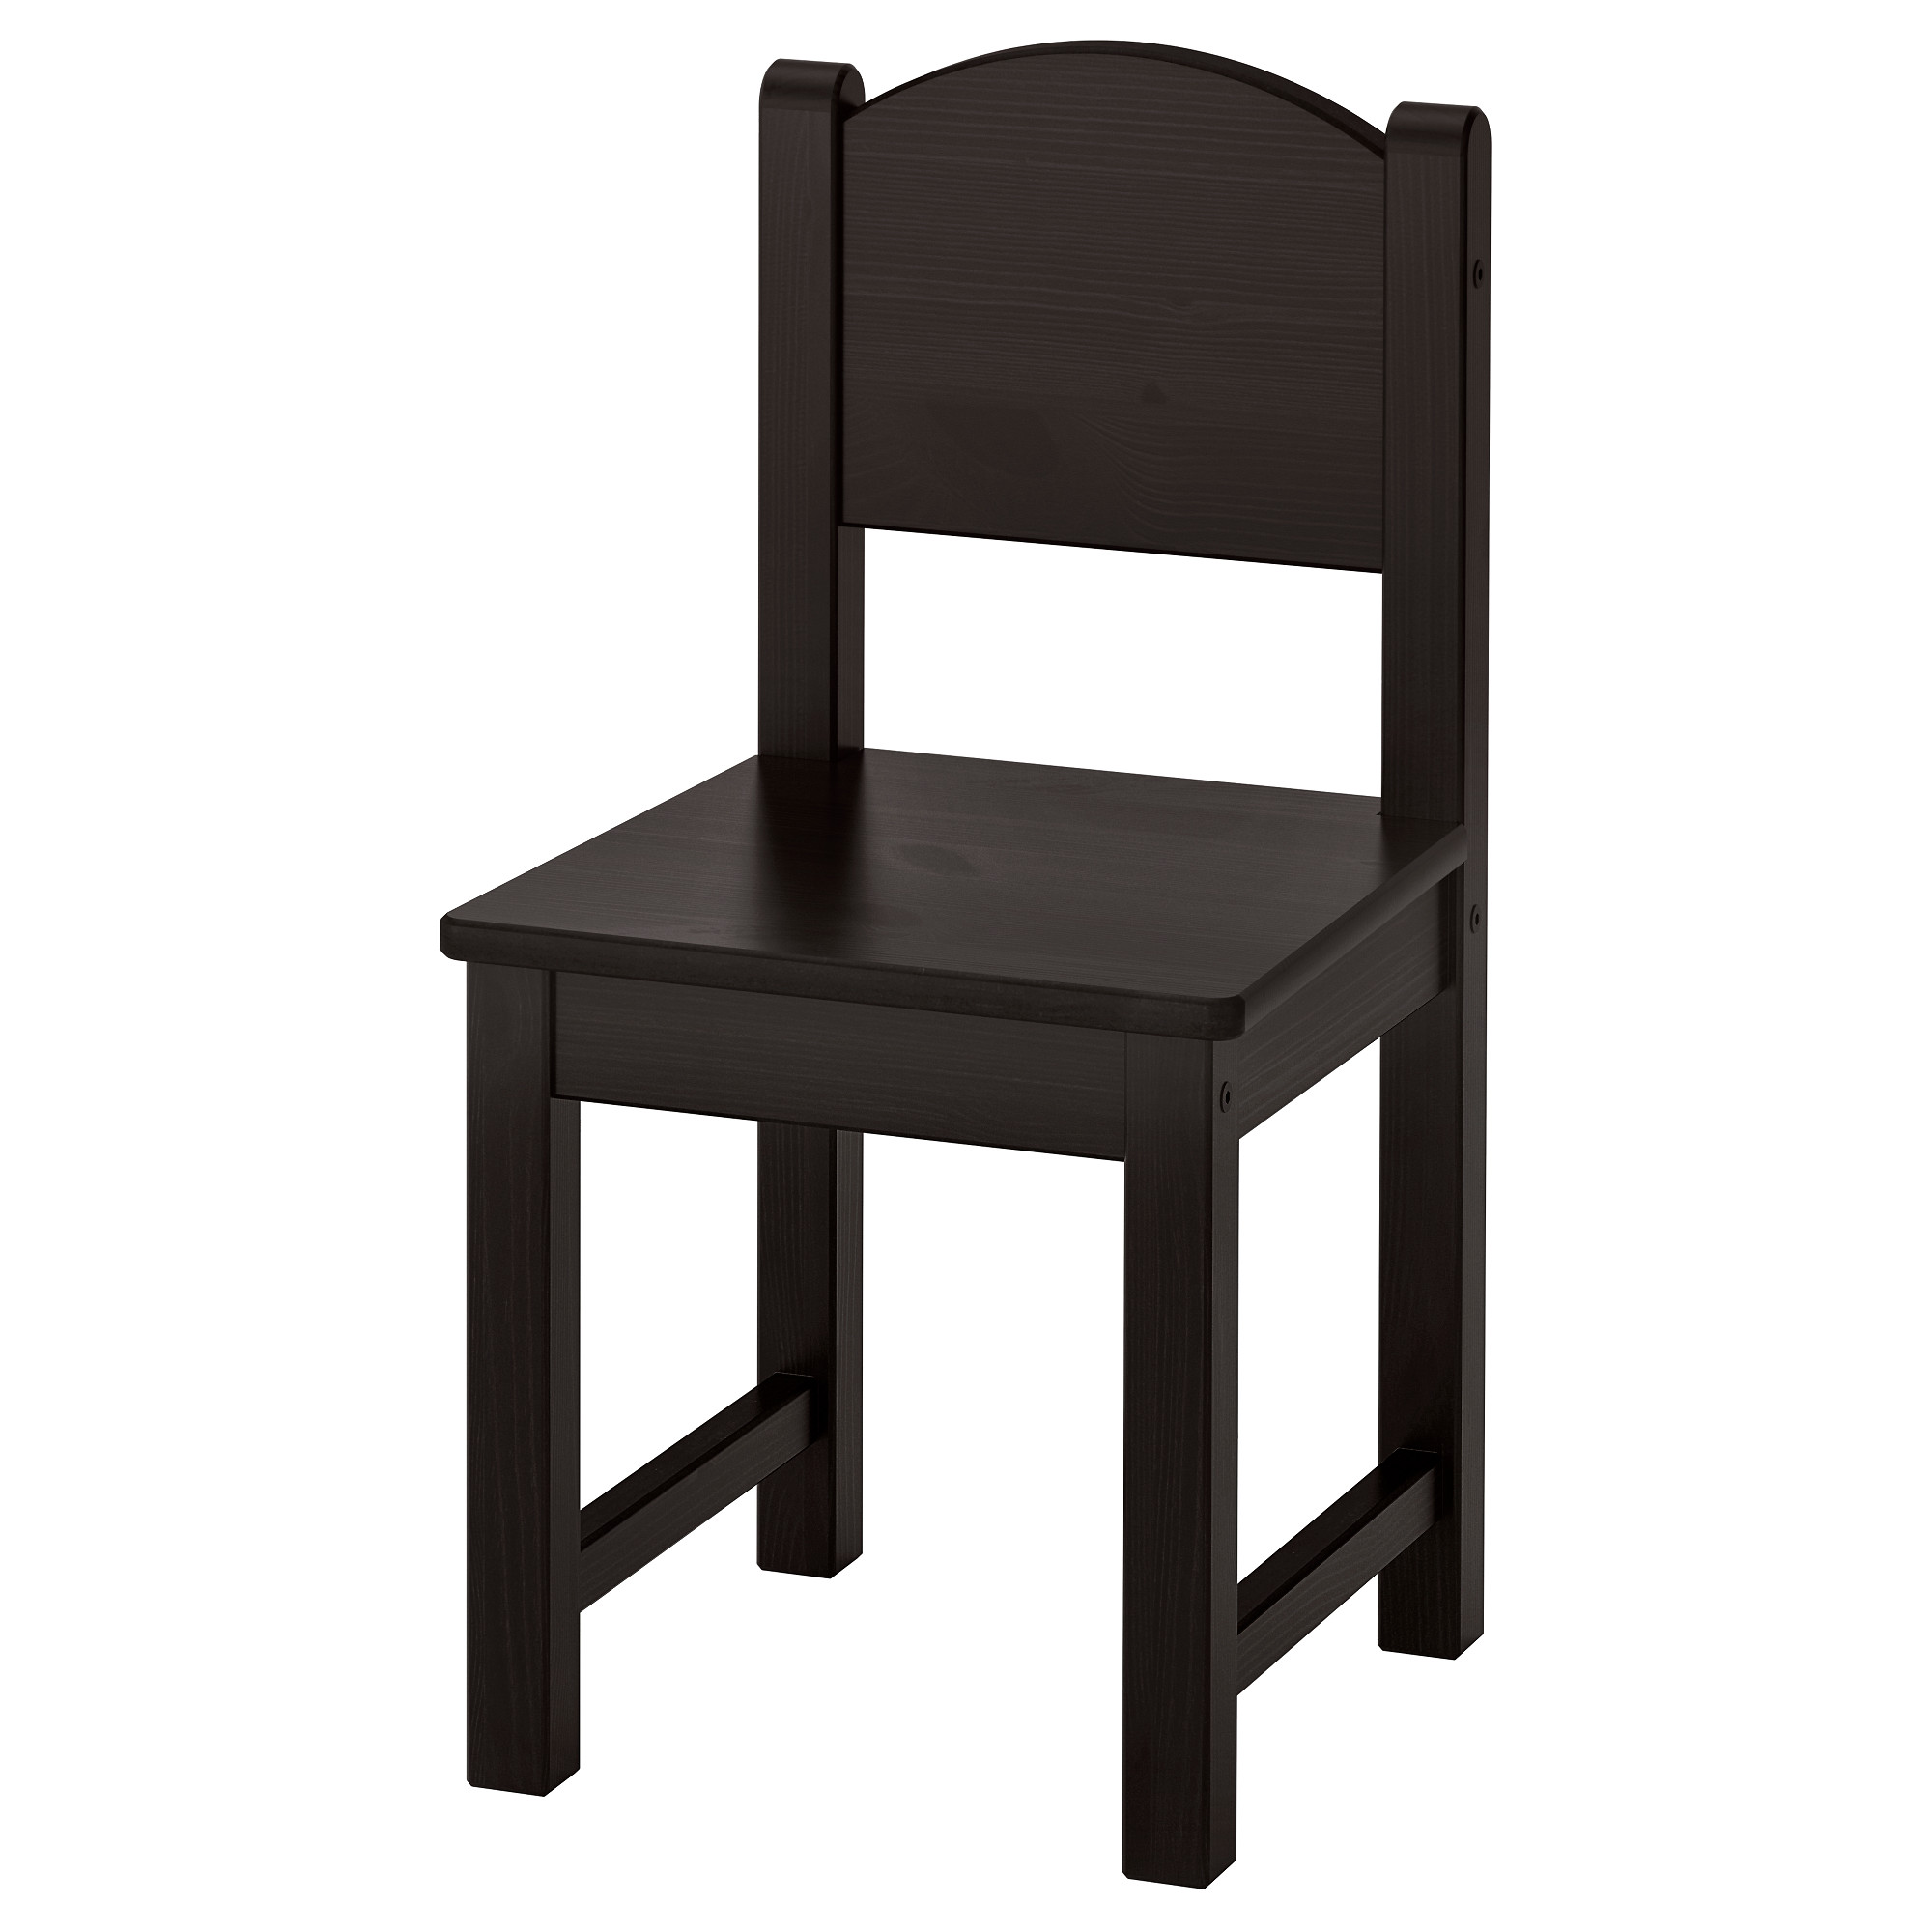 Sundvik Children S Chair Ikea # Federici Muebles Canada Gomez